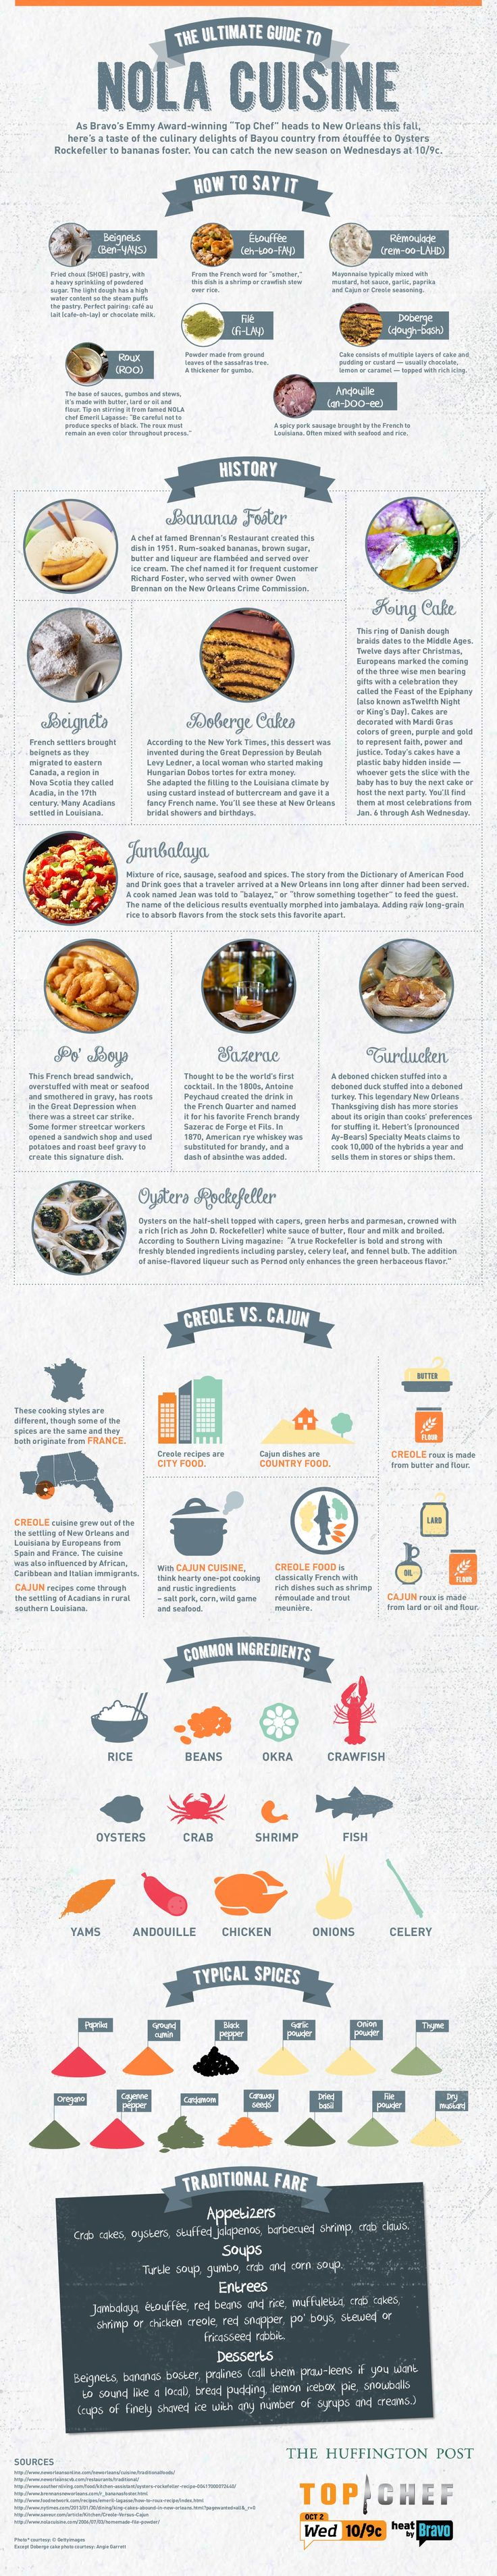 New Orleans-Style Cooking: Guide To Cajun And Creole Fare (INFOGRAPHIC)